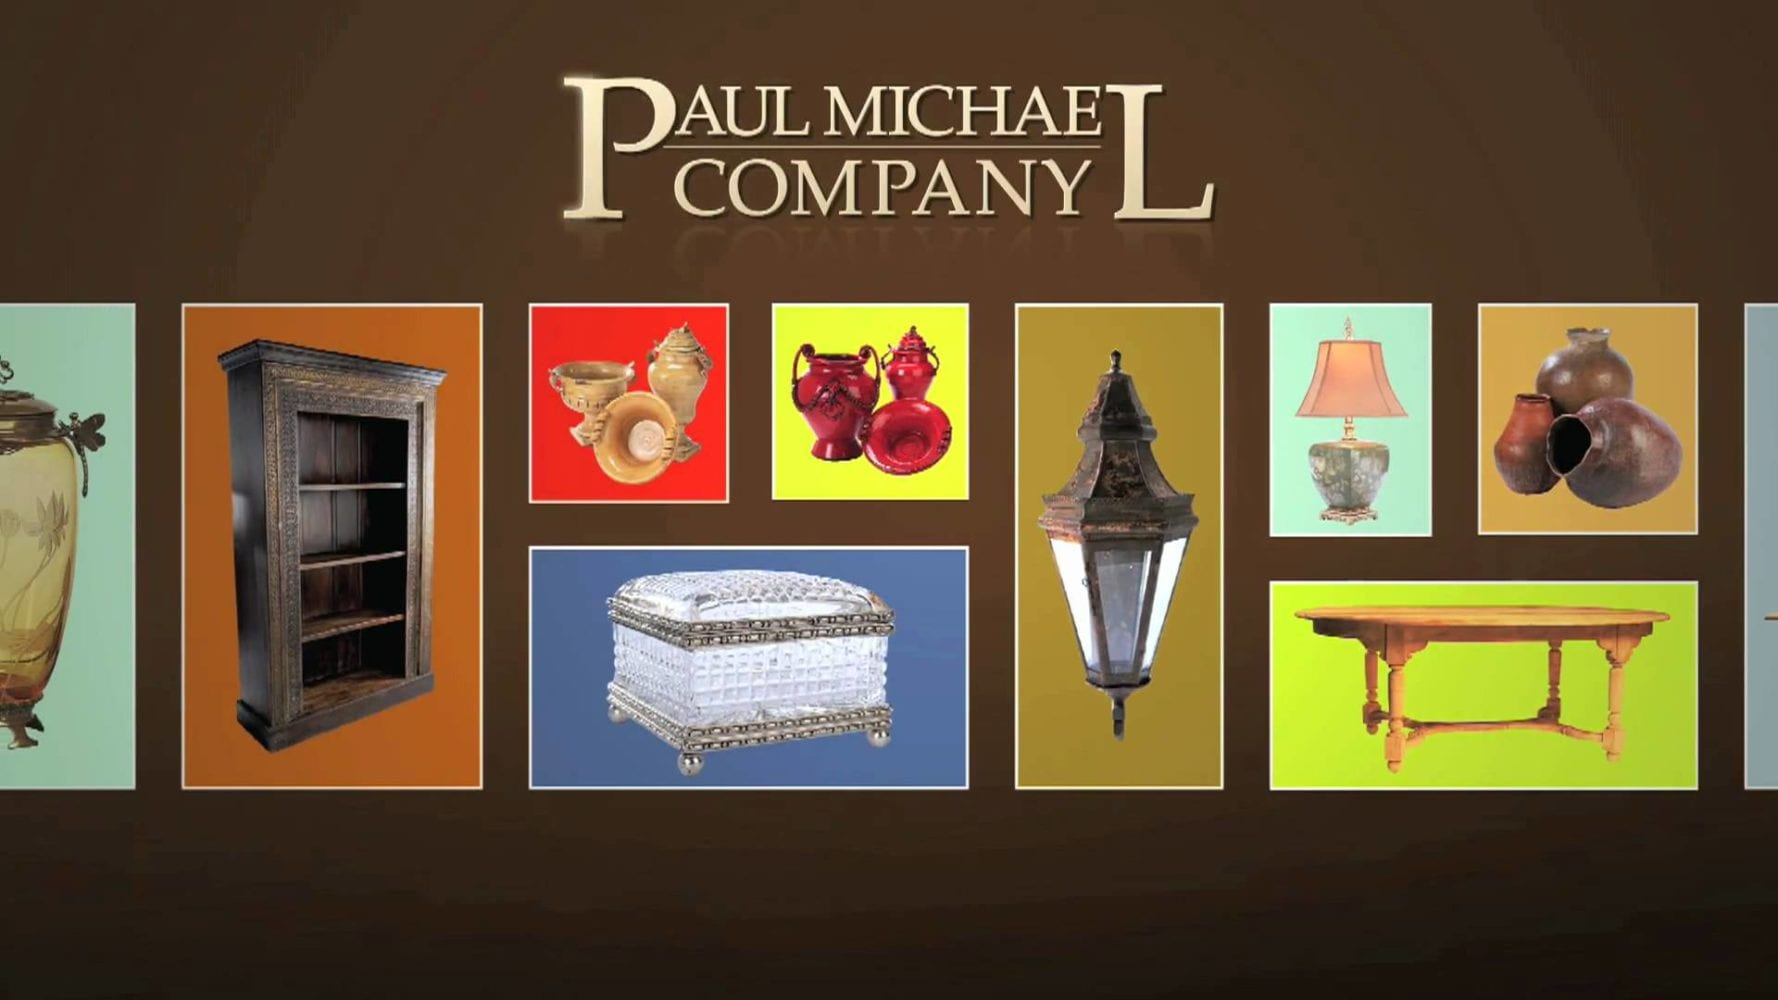 Paul Michael Company logo